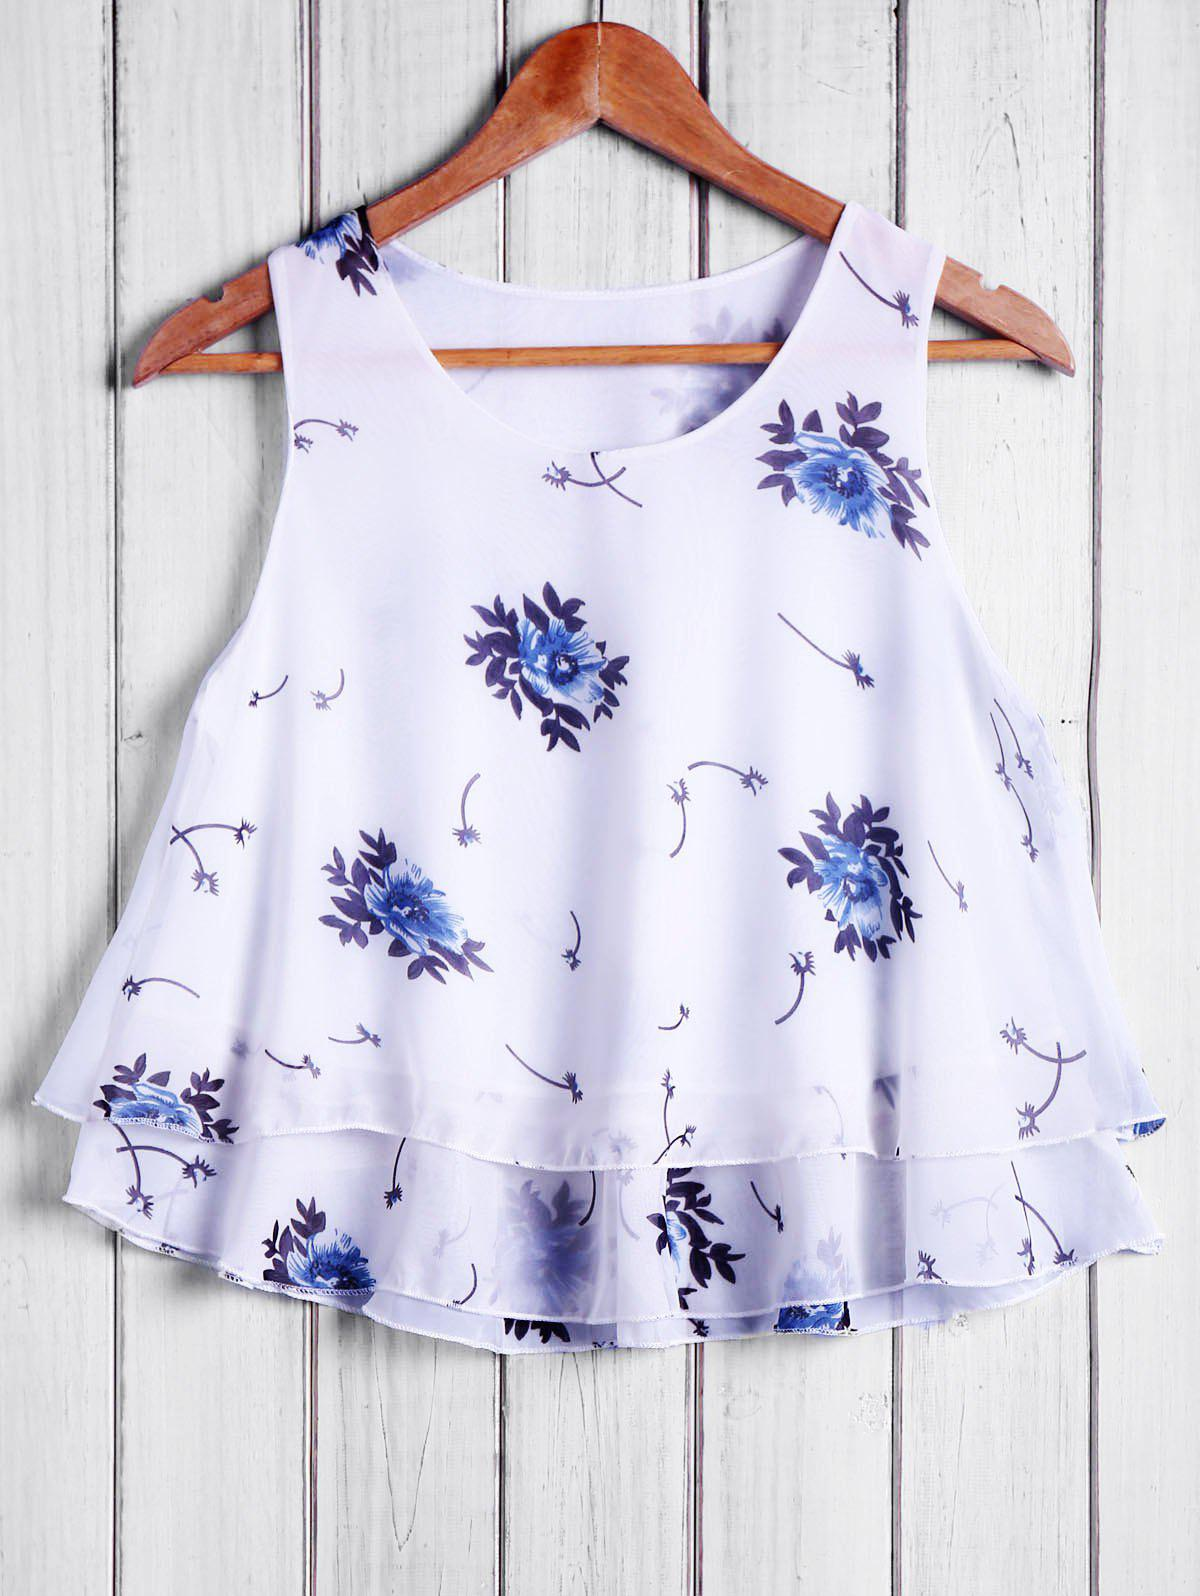 Refreshing Round Collar Chiffon Floral Print Women's Tank Top - WHITE ONE SIZE(FIT SIZE XS TO M)